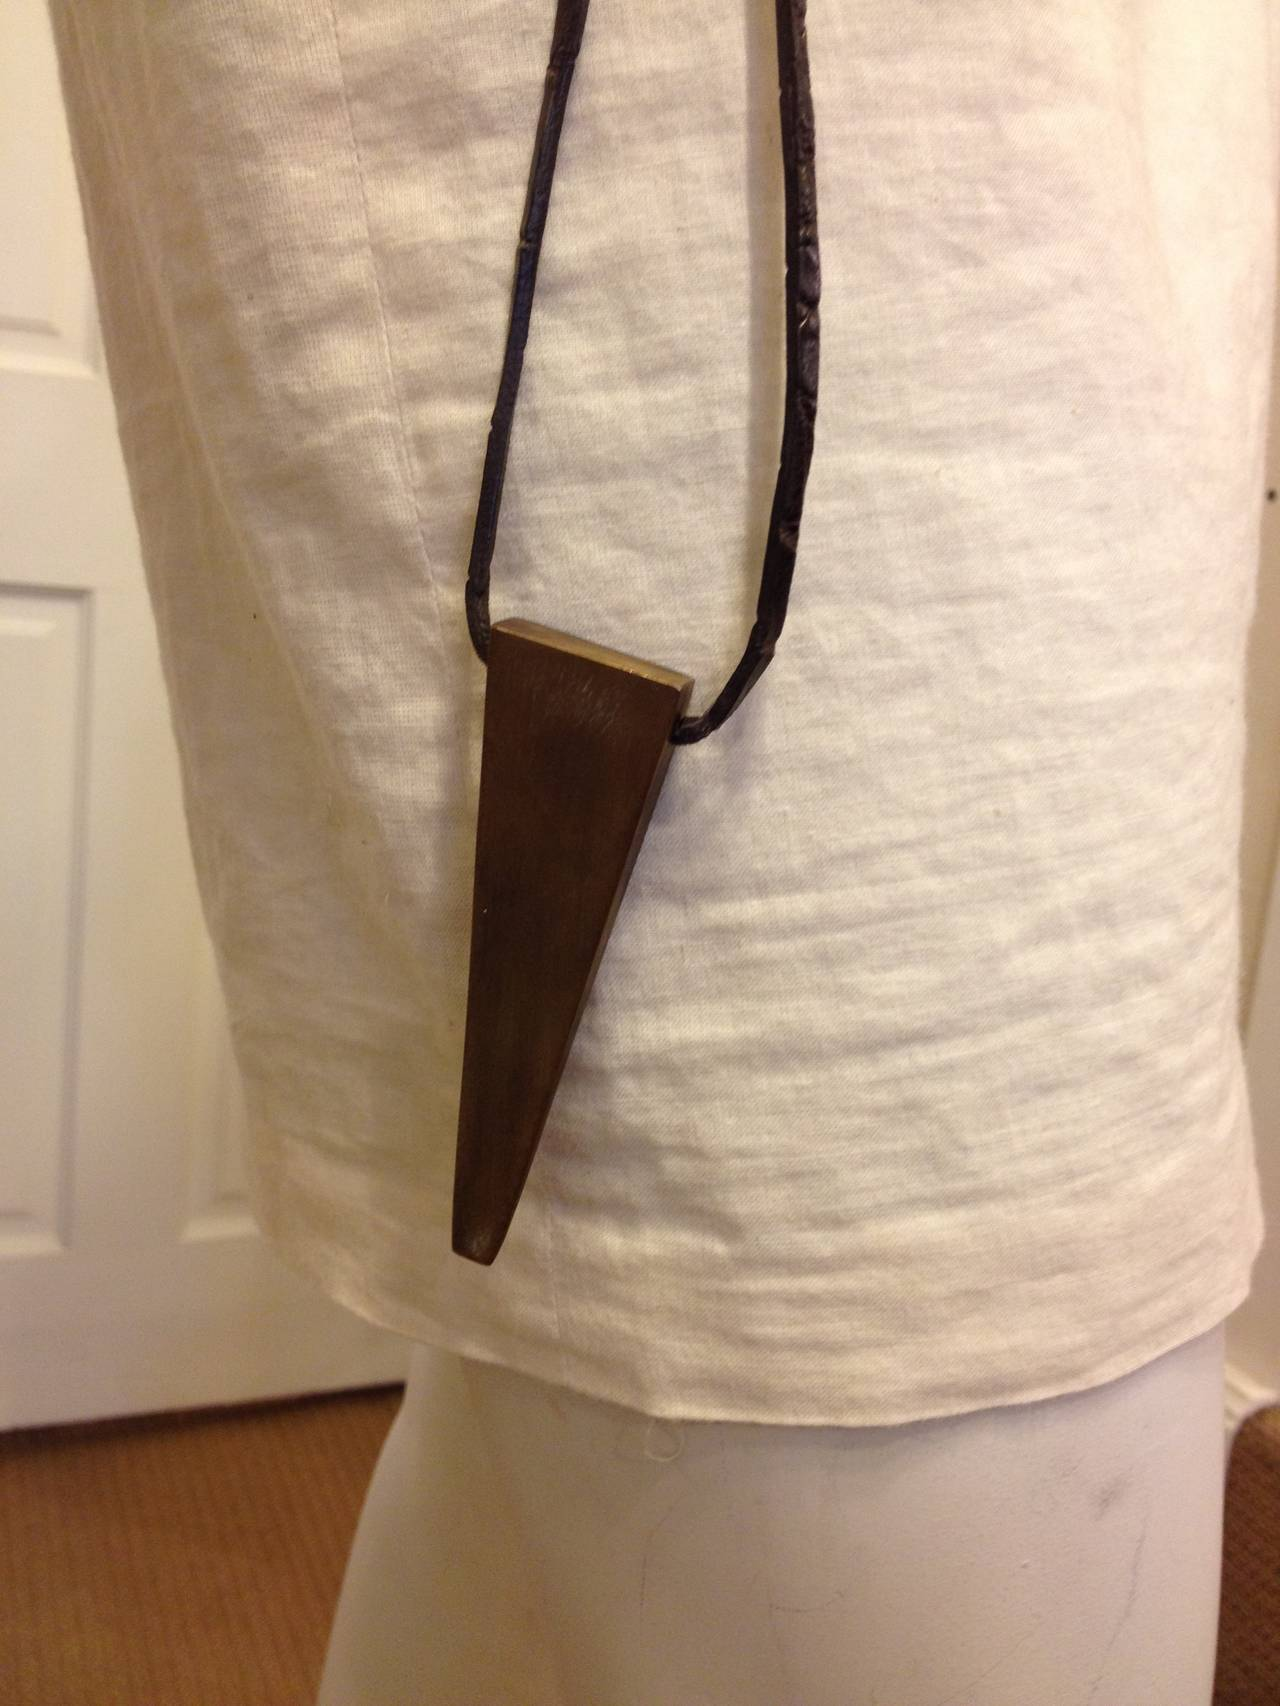 This belt is made of a strip of alligator leather in a deep woody brown color, tapering at either end and finished without hardware for a raw, organic look. A bronze-toned angular sliver of metal hangs from a leather cord on one hip. This piece has